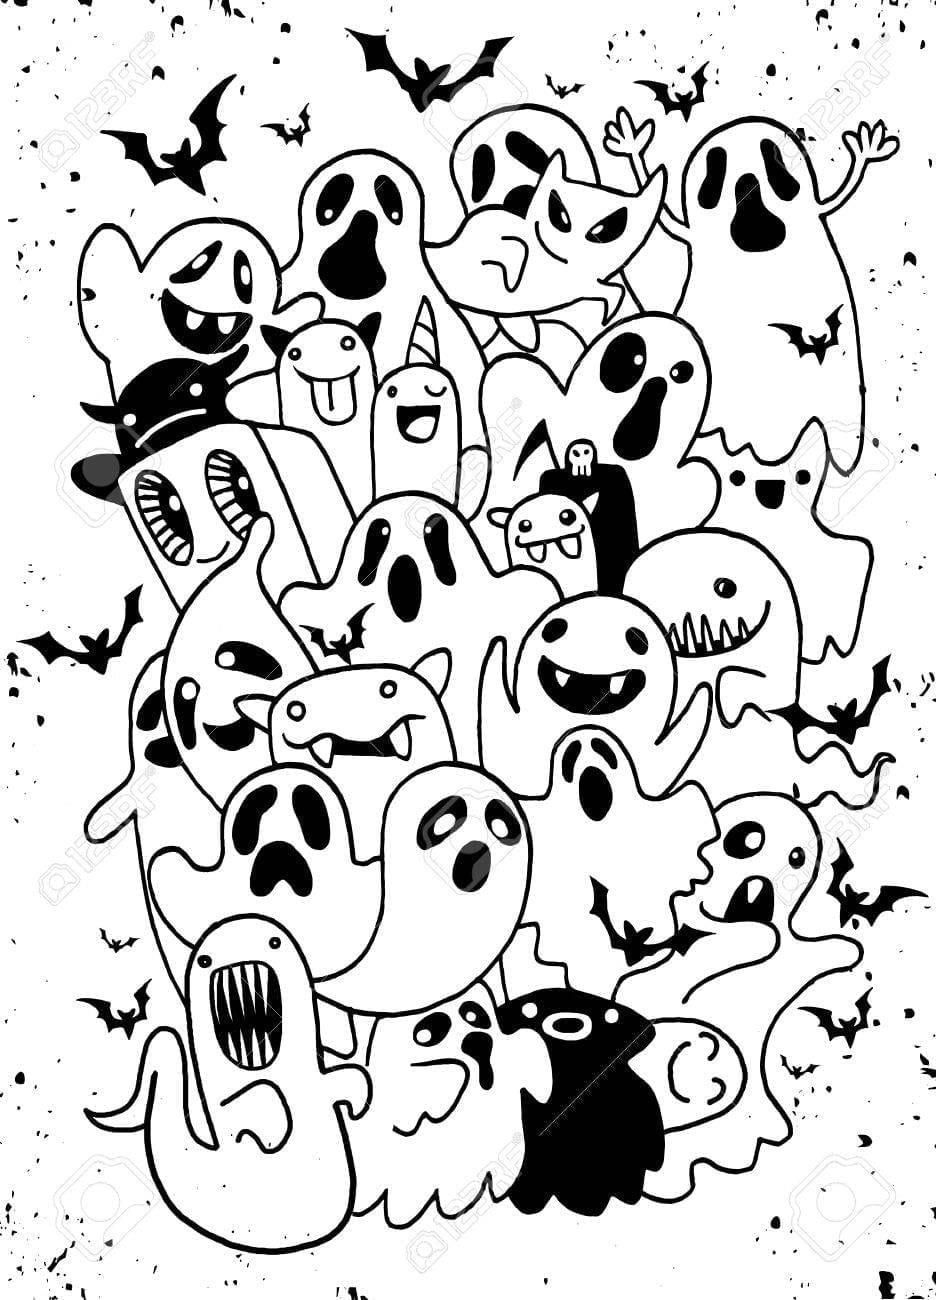 Cartoon Ghost Step By Step Drawing Lesson Ghost Cartoon Drawing Lessons Drawing Exercises